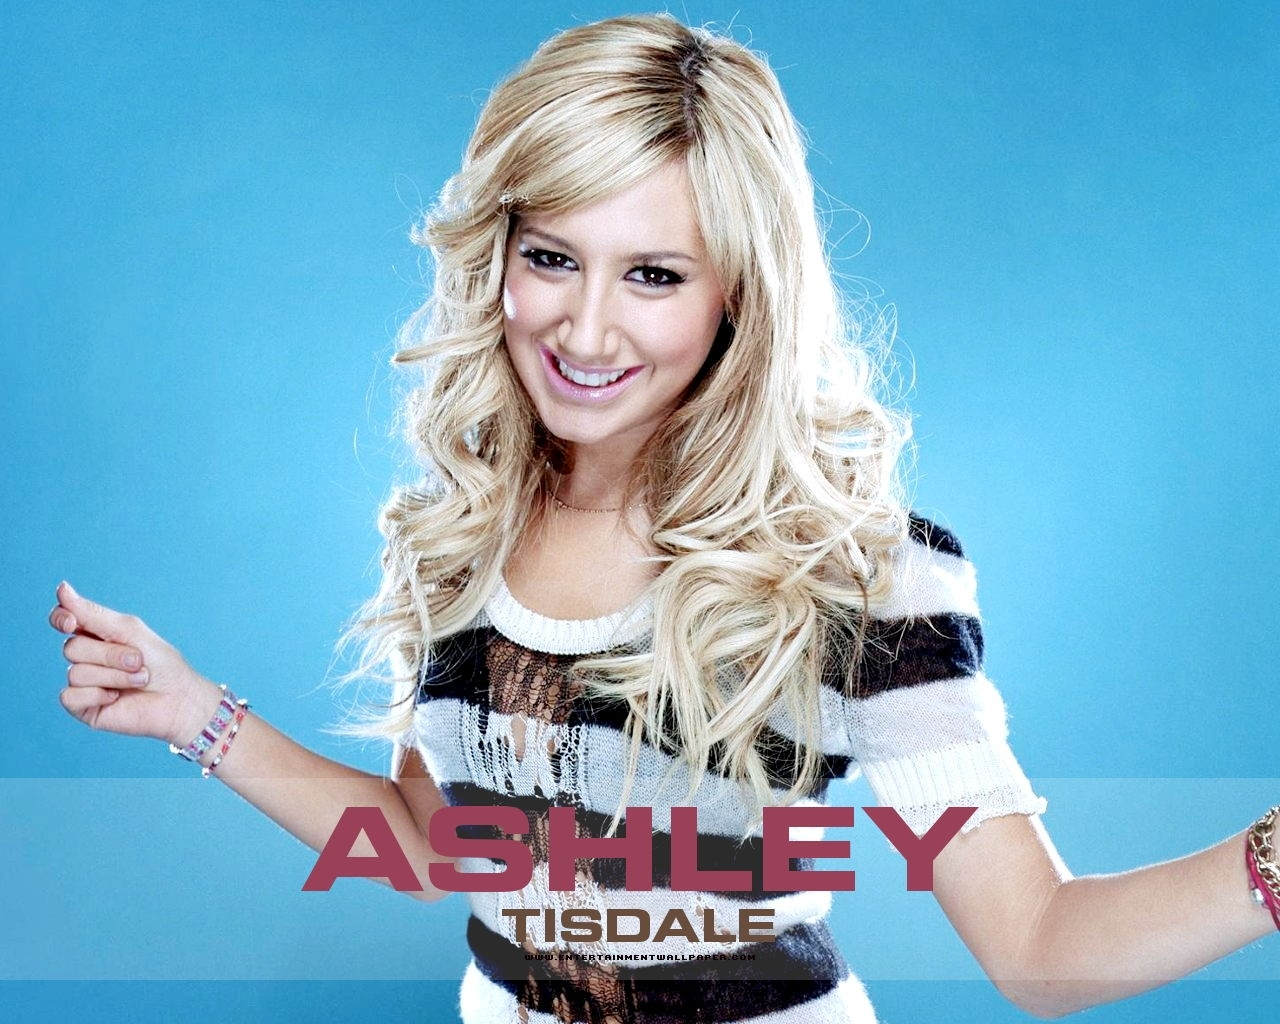 http://images2.fanpop.com/images/photos/4000000/ashley-ashley-tisdale-4048665-1280-1024.jpg